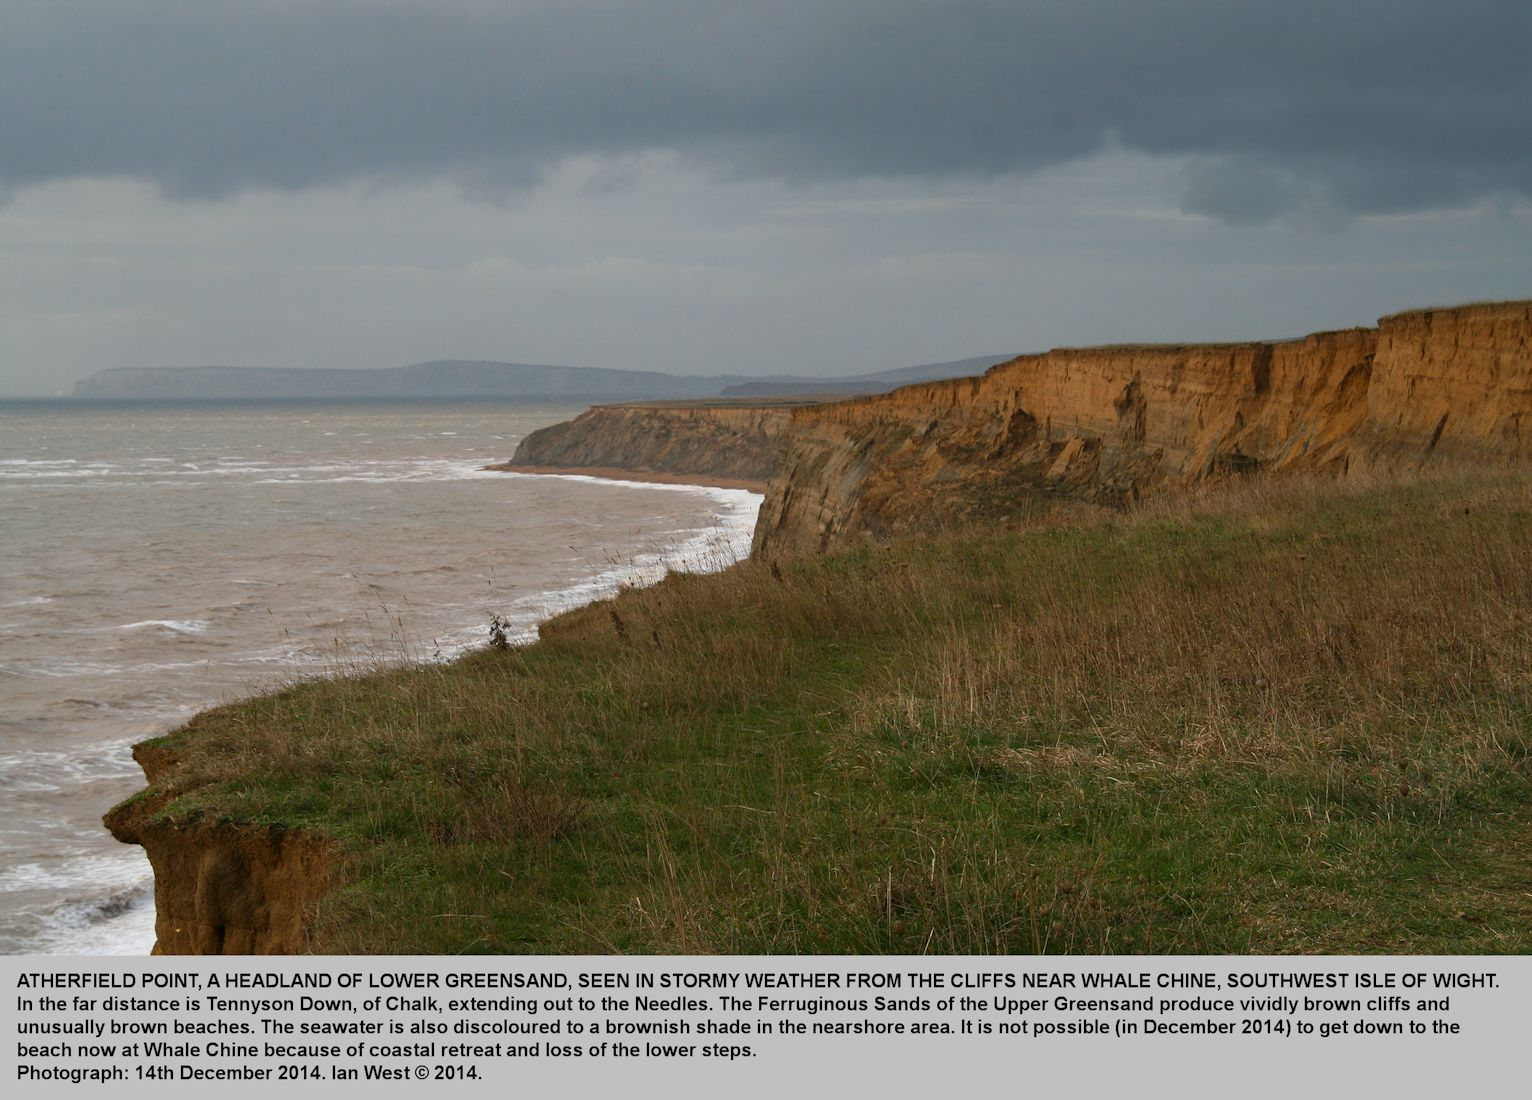 Stormy weather at Atherfield Point, as seen from above Whale Chine, southwest coast of the Isle of Wight, 14th December 2014